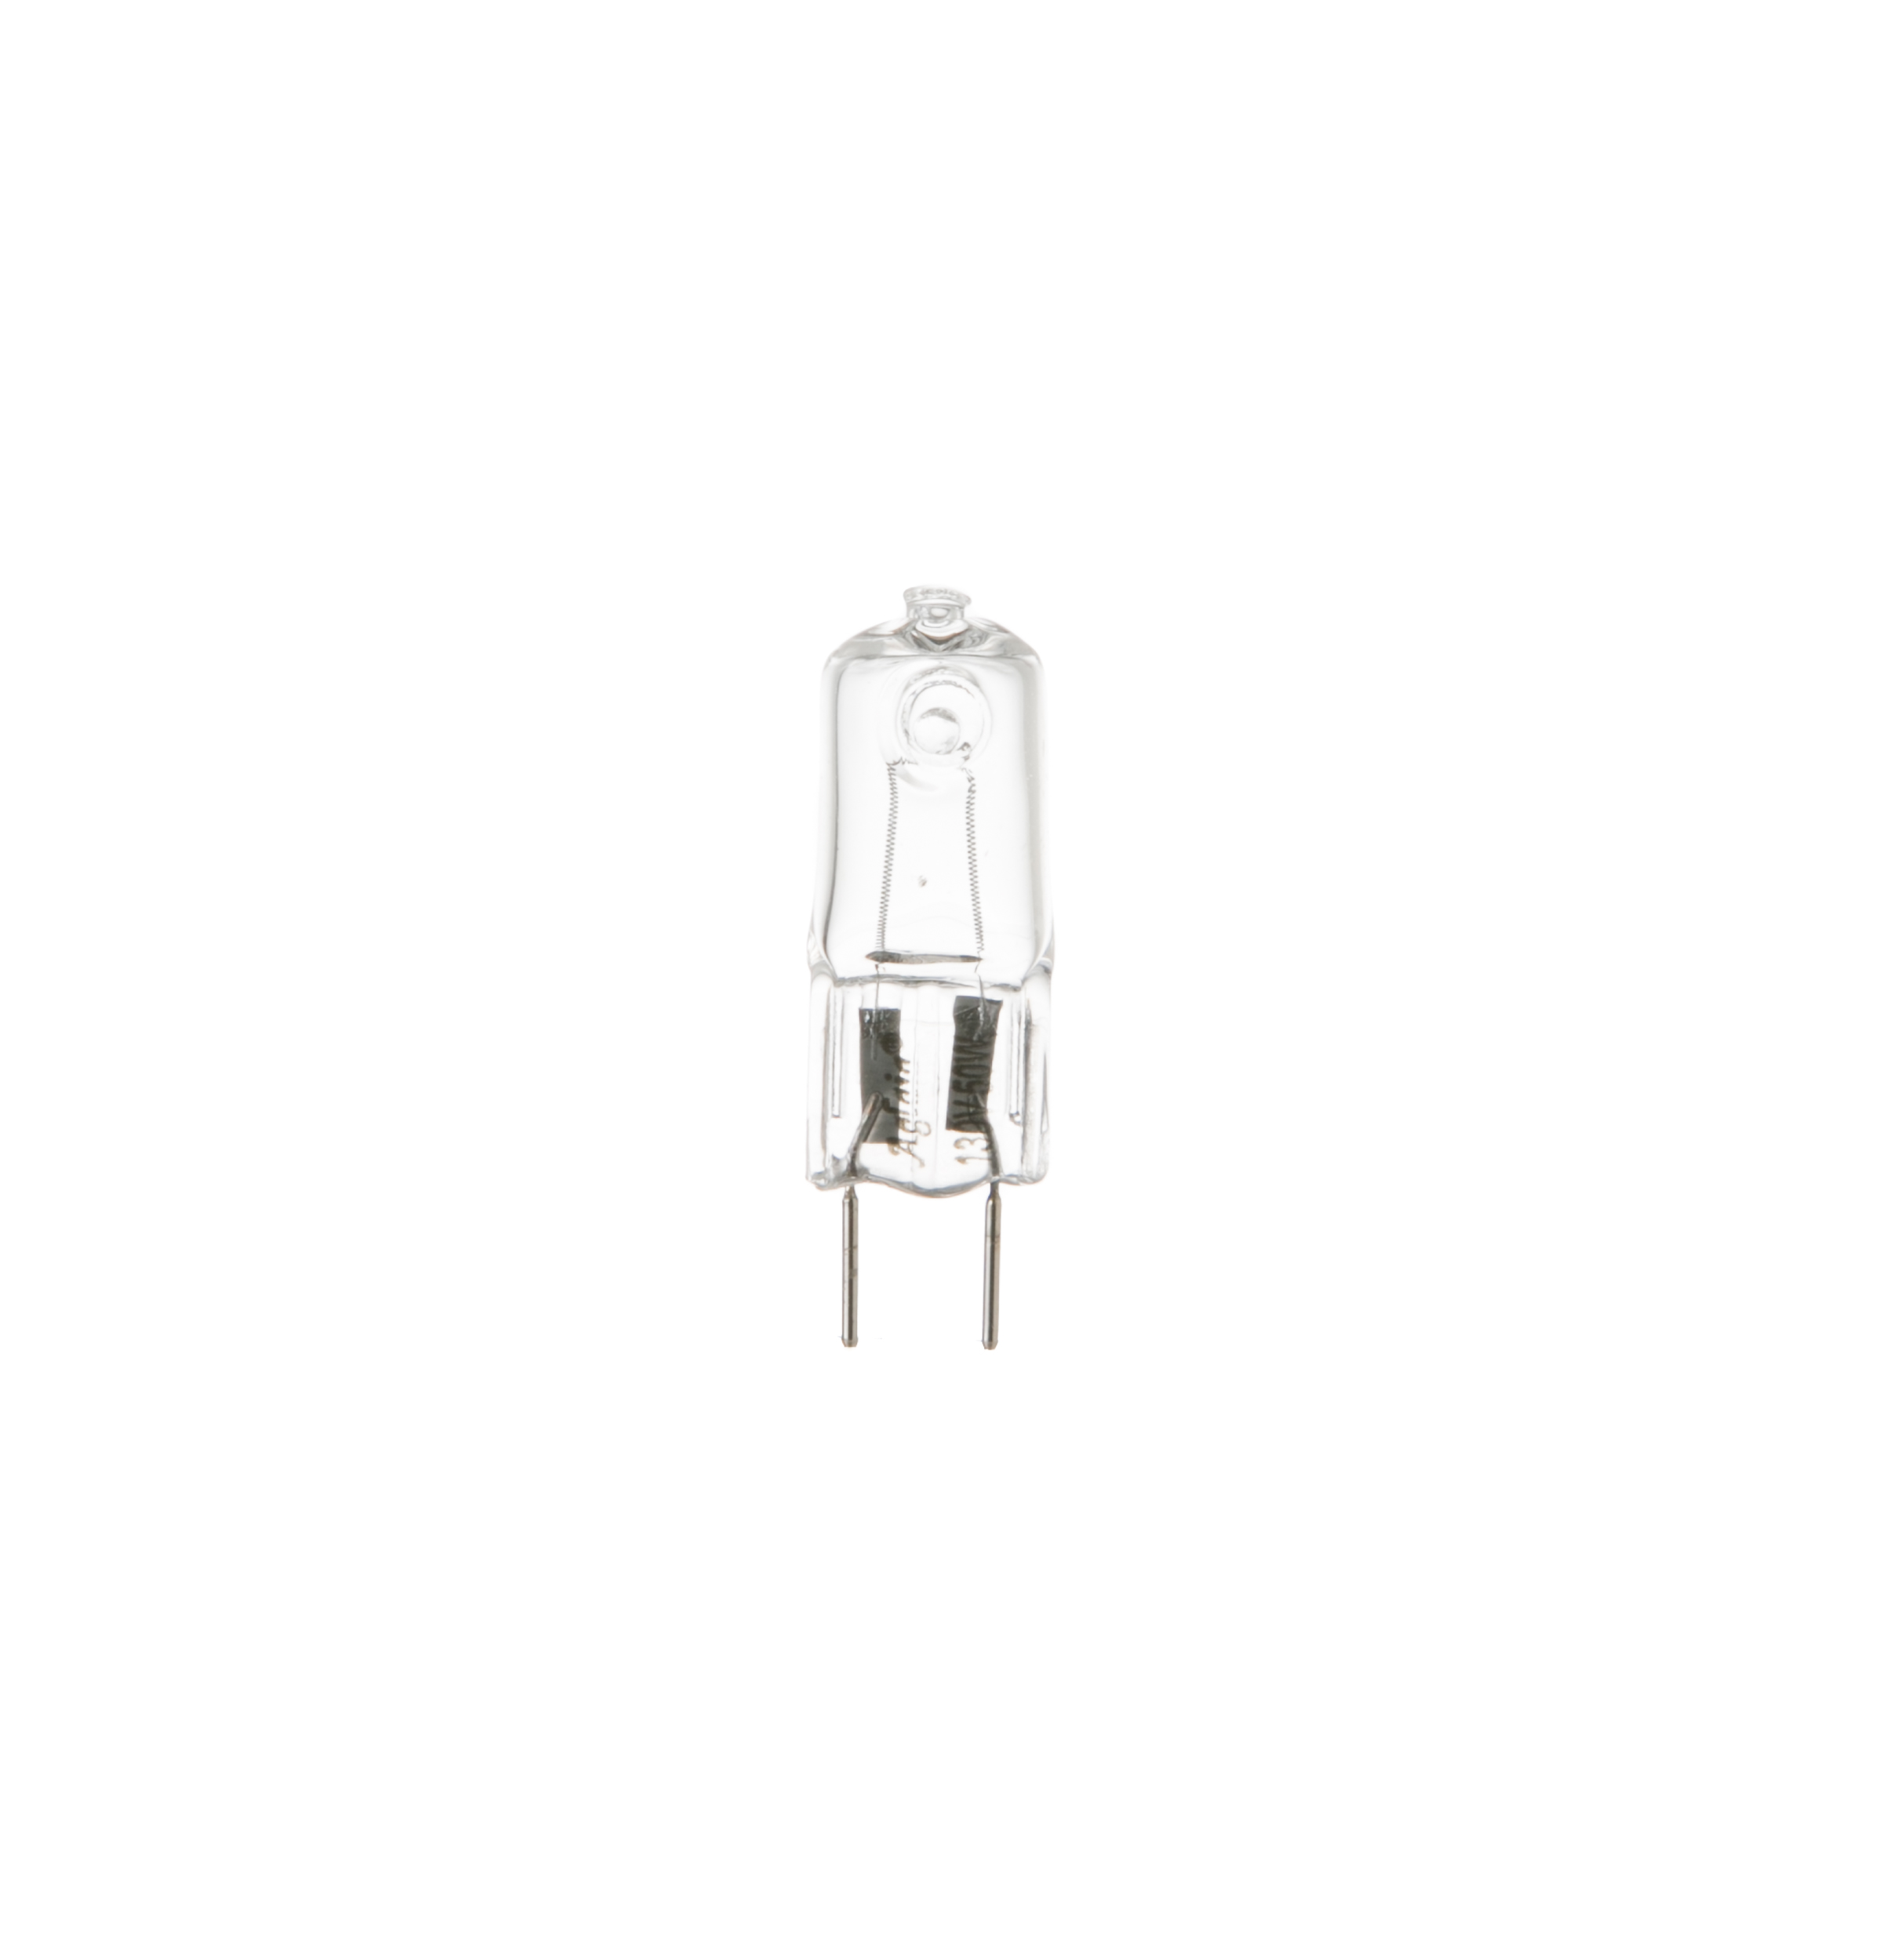 Wb08x10057 microwave halogen bulb 130v 50w g8 ge appliances product image product image aloadofball Gallery